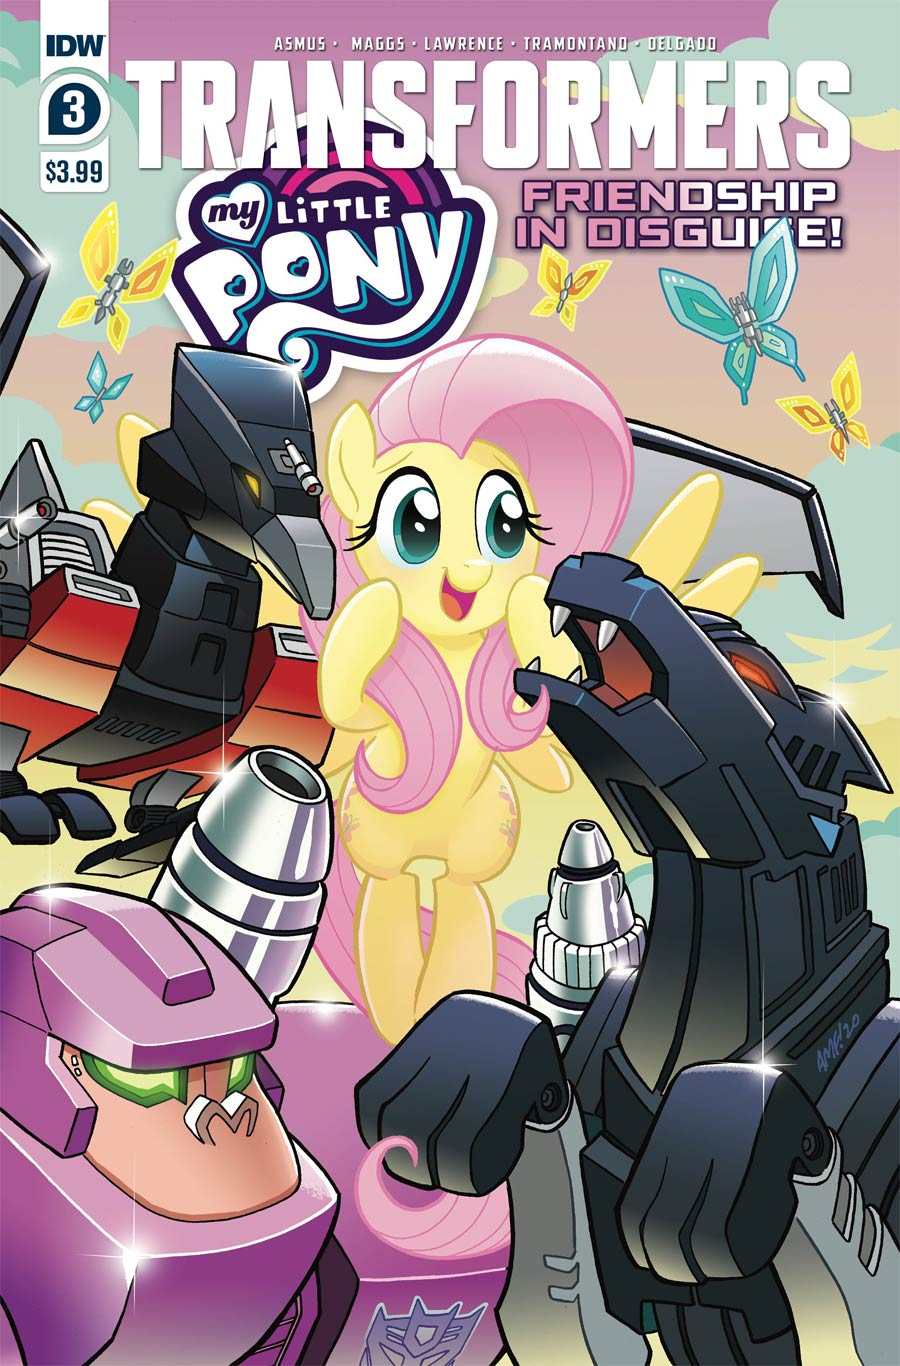 My Little Pony Transformers Friendship In Disguise #3 Cover A Regular Tony Fleecs Cover